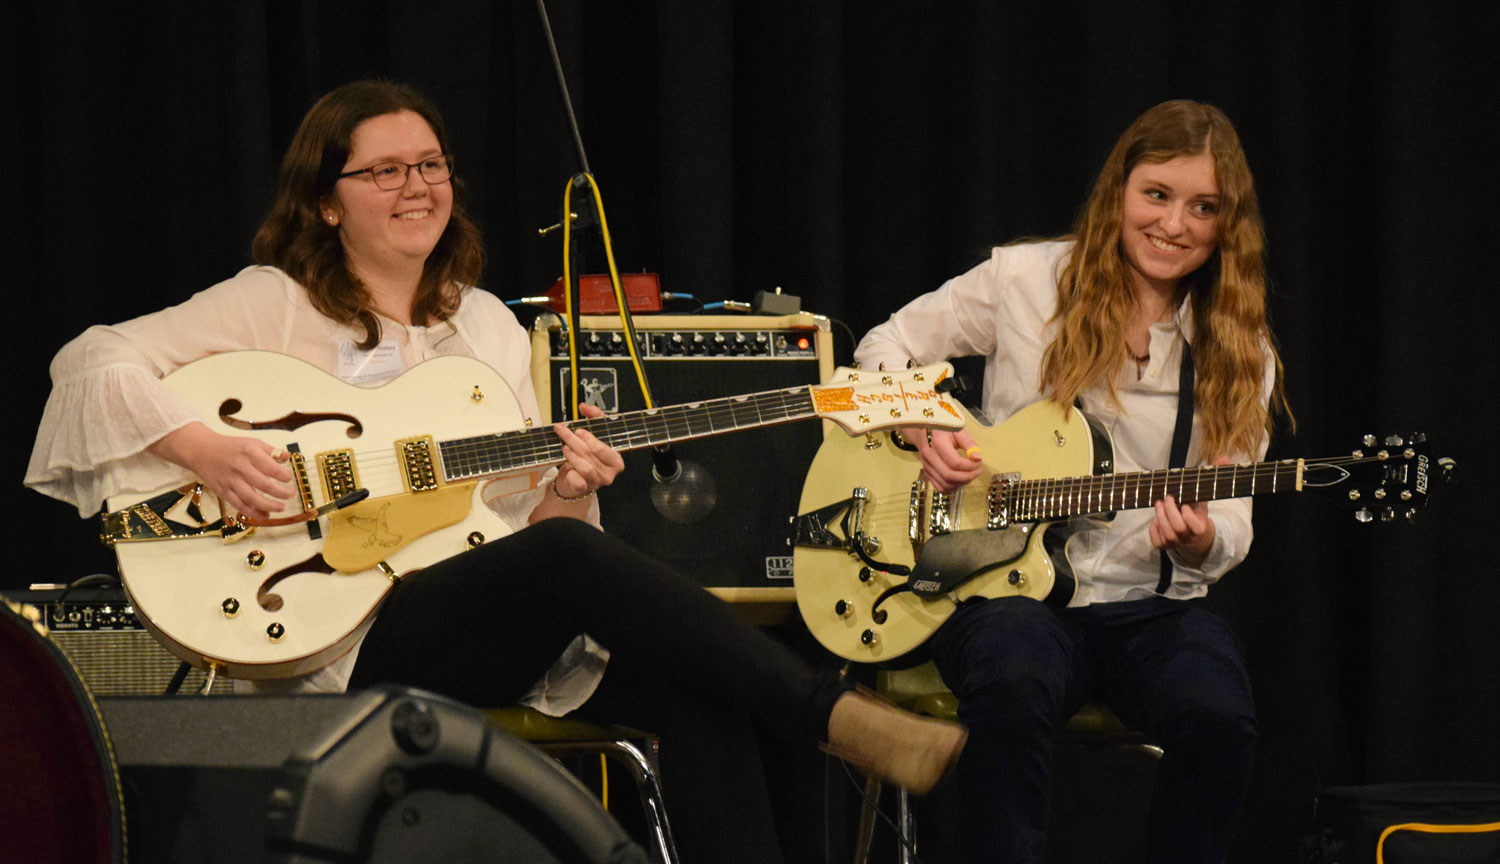 Katelyn Prieboy (left) and Bella Speelman playing their new Gretsch guitars onstage at the International Home of the Legends Thumbpicking Competition in Powderly, Ky.